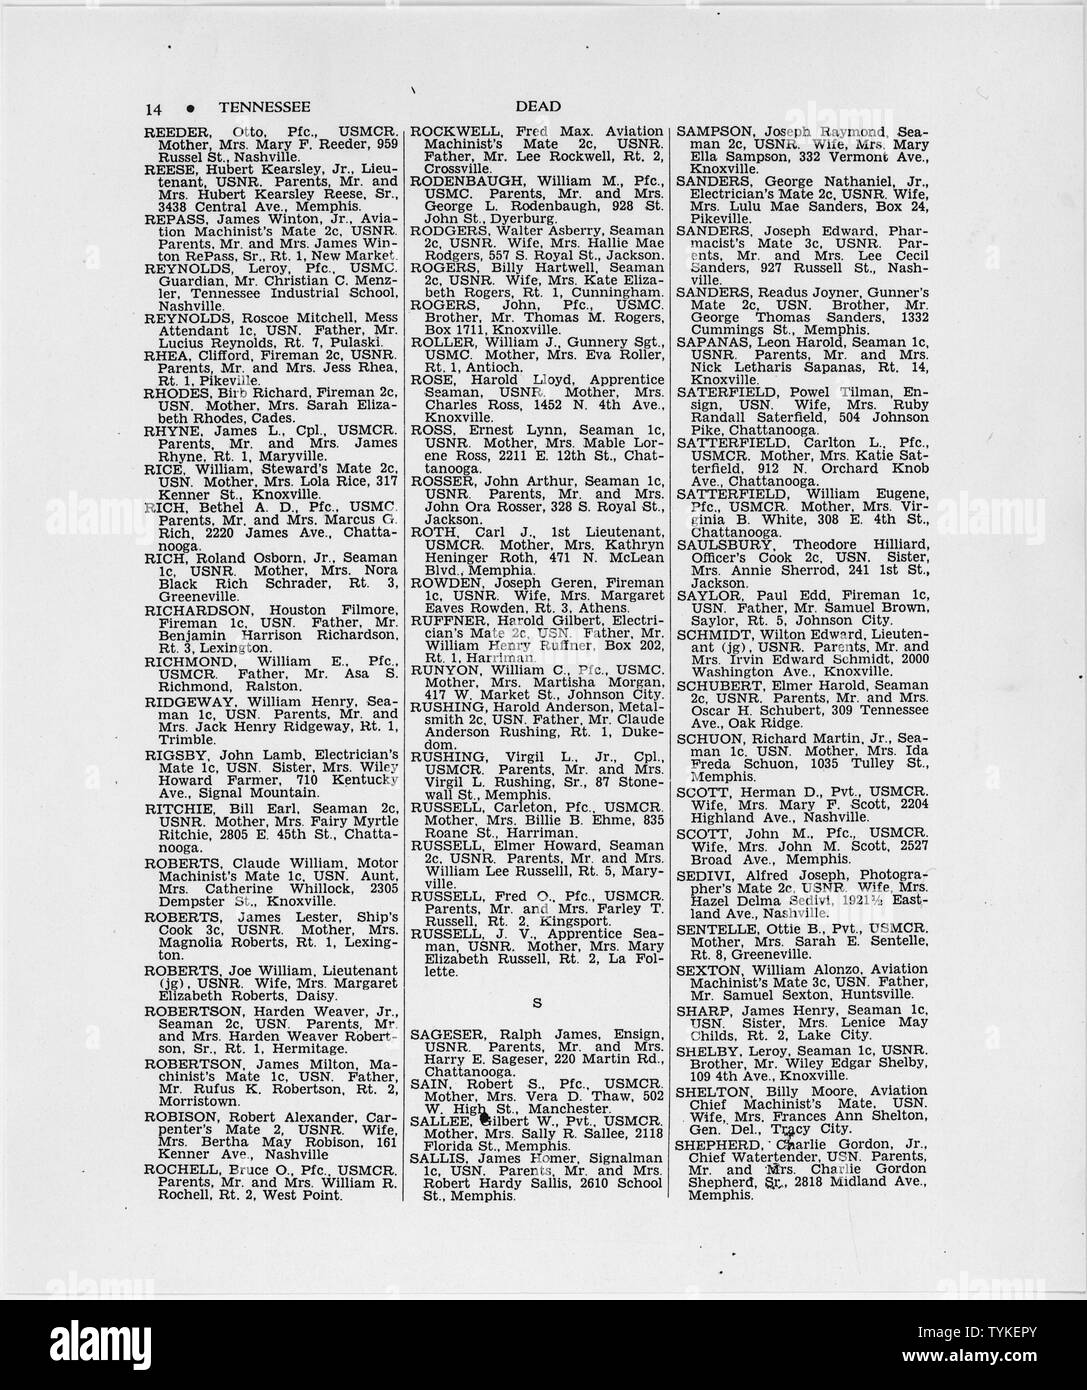 State Summary of War Casualties from World War II for Navy, Marine Corps, and Coast Guard Personnel from Tennessee; Scope and content:  This list identifies those men on active duty with the United States Navy, Marine Corps and Coast Guard, whose deaths resulted directly from enemy action or from operational activities against the enemy in war zones from December 7, 1941, to the end of World War II. Casualties which occurred in the United States, or as a result of disease, homicide, or suicide anywhere are not included. Entries in the list are arranged into the following sections: Dead (Combat - Stock Image